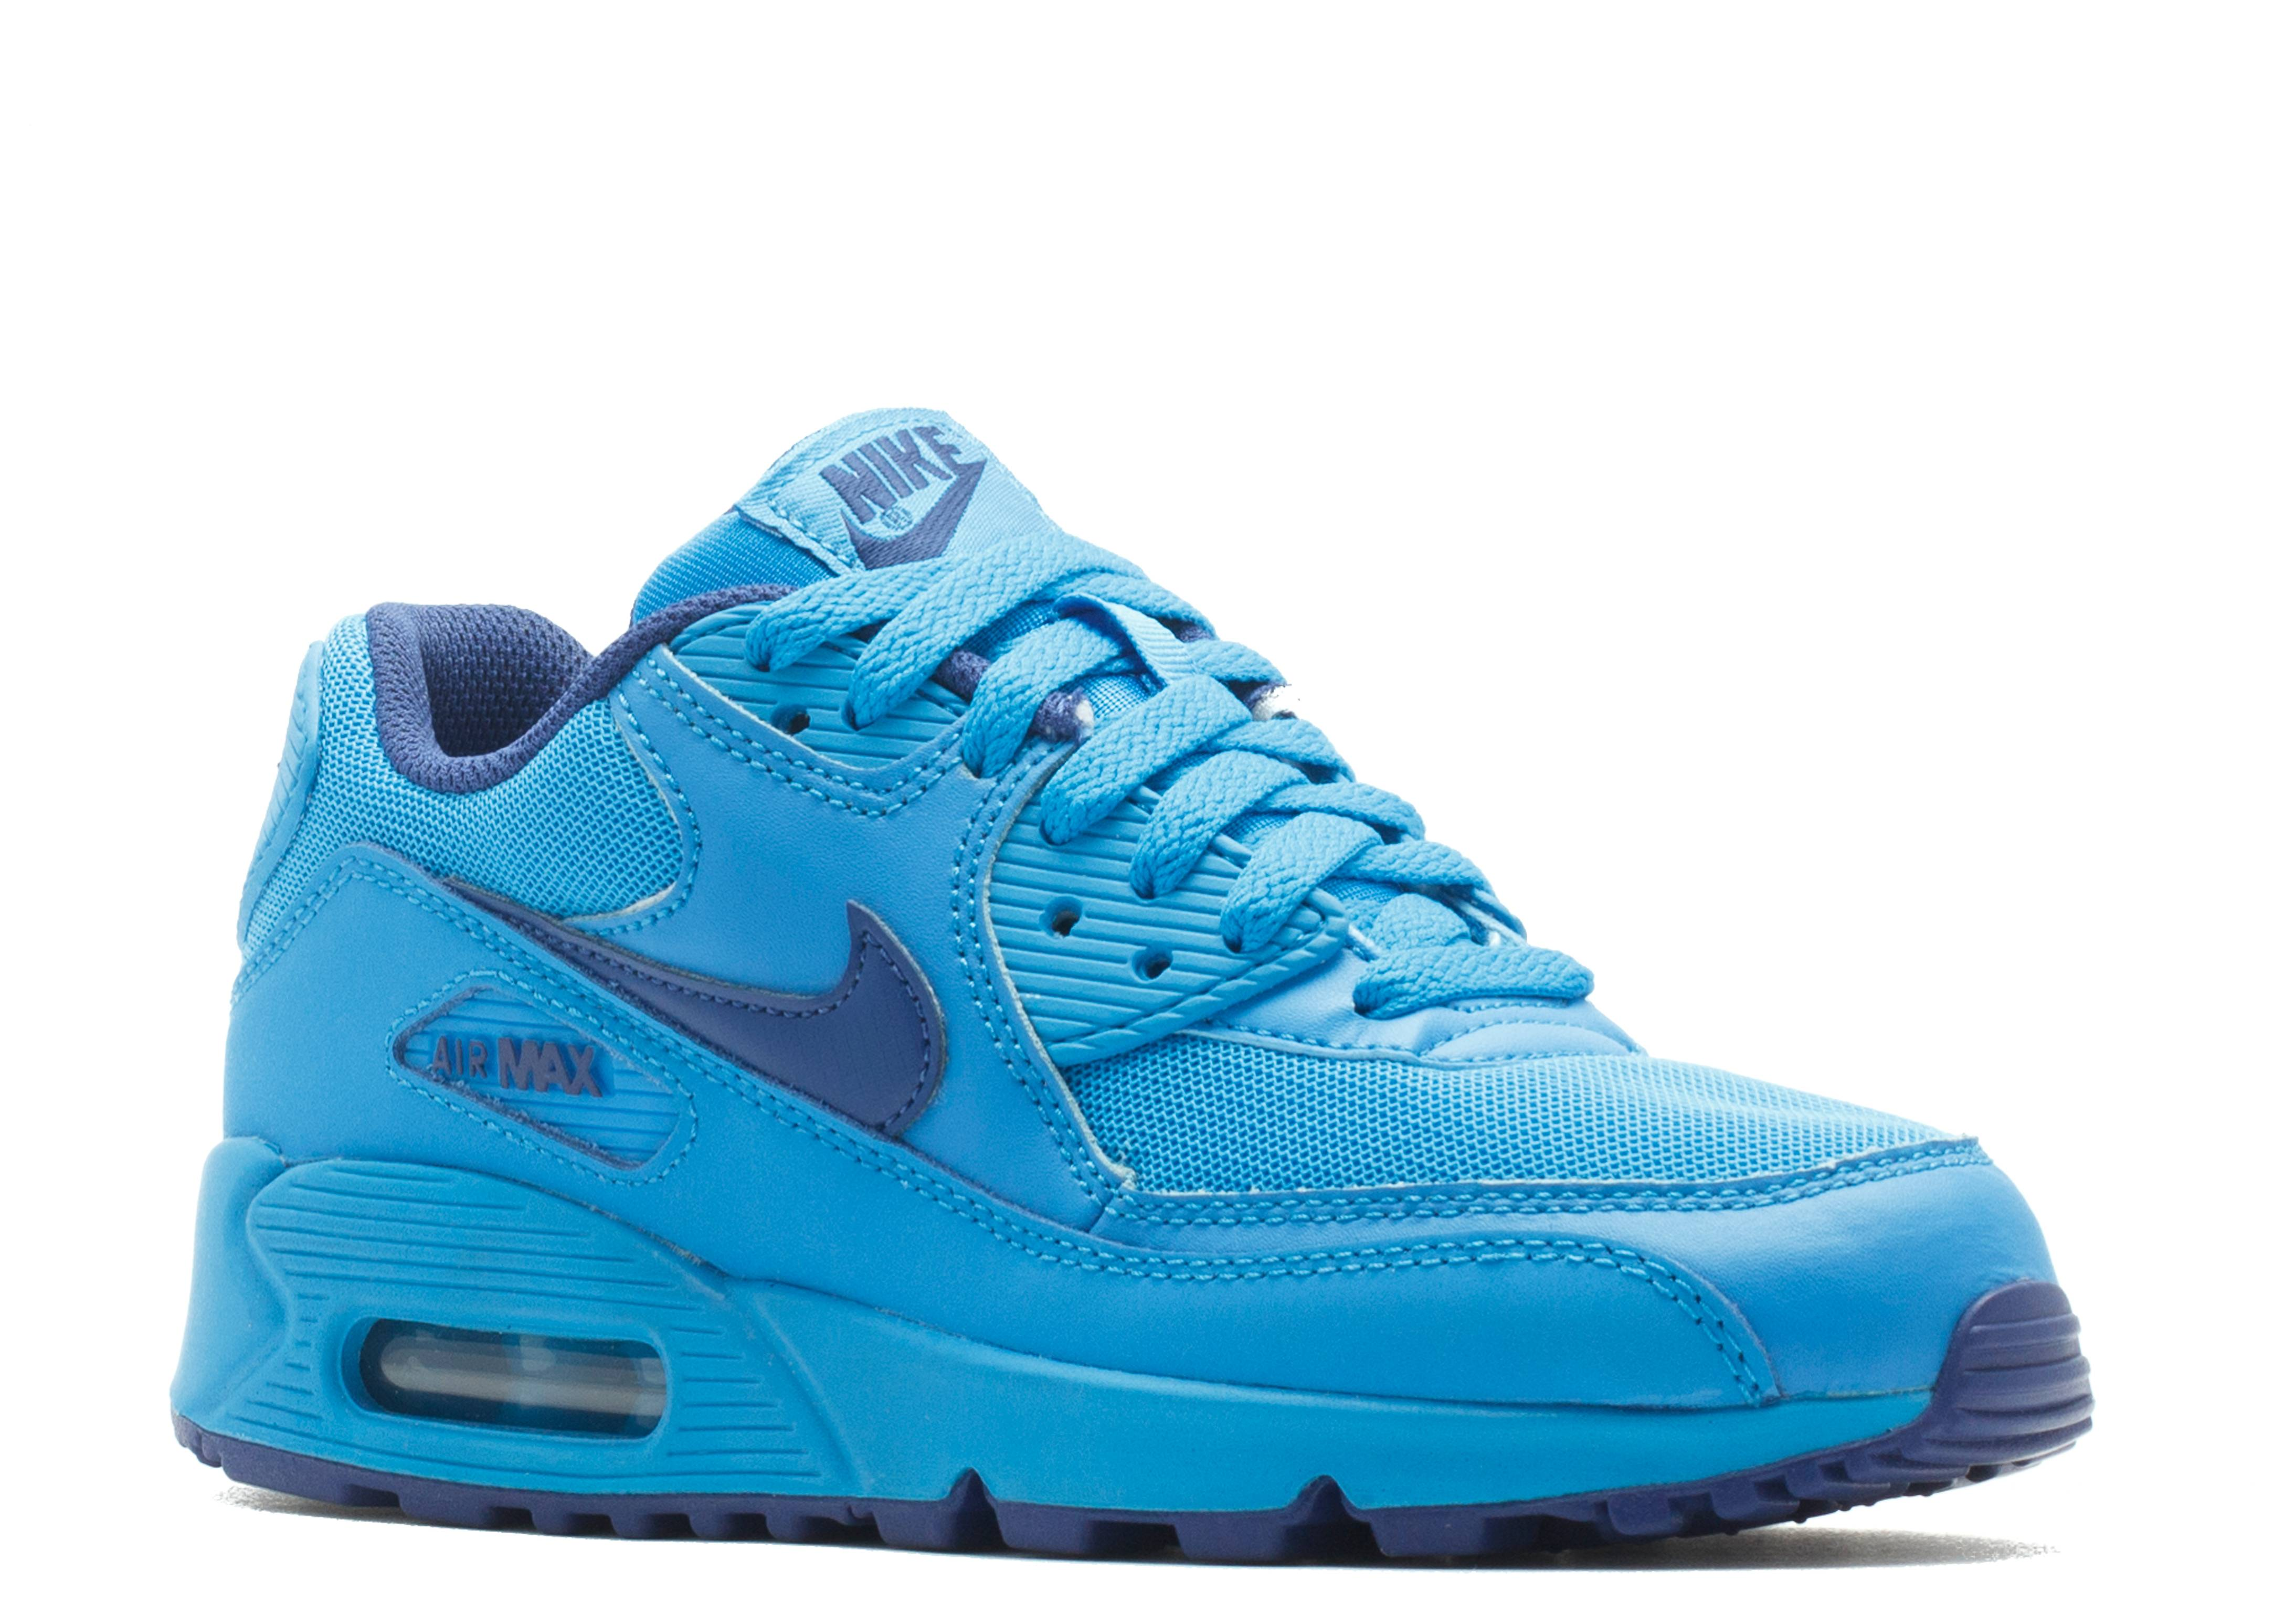 online store 563e9 70677 ... switzerland dallas cowboys running back 1990s. nike air max 90 deep  royal blue 568d8 345a0